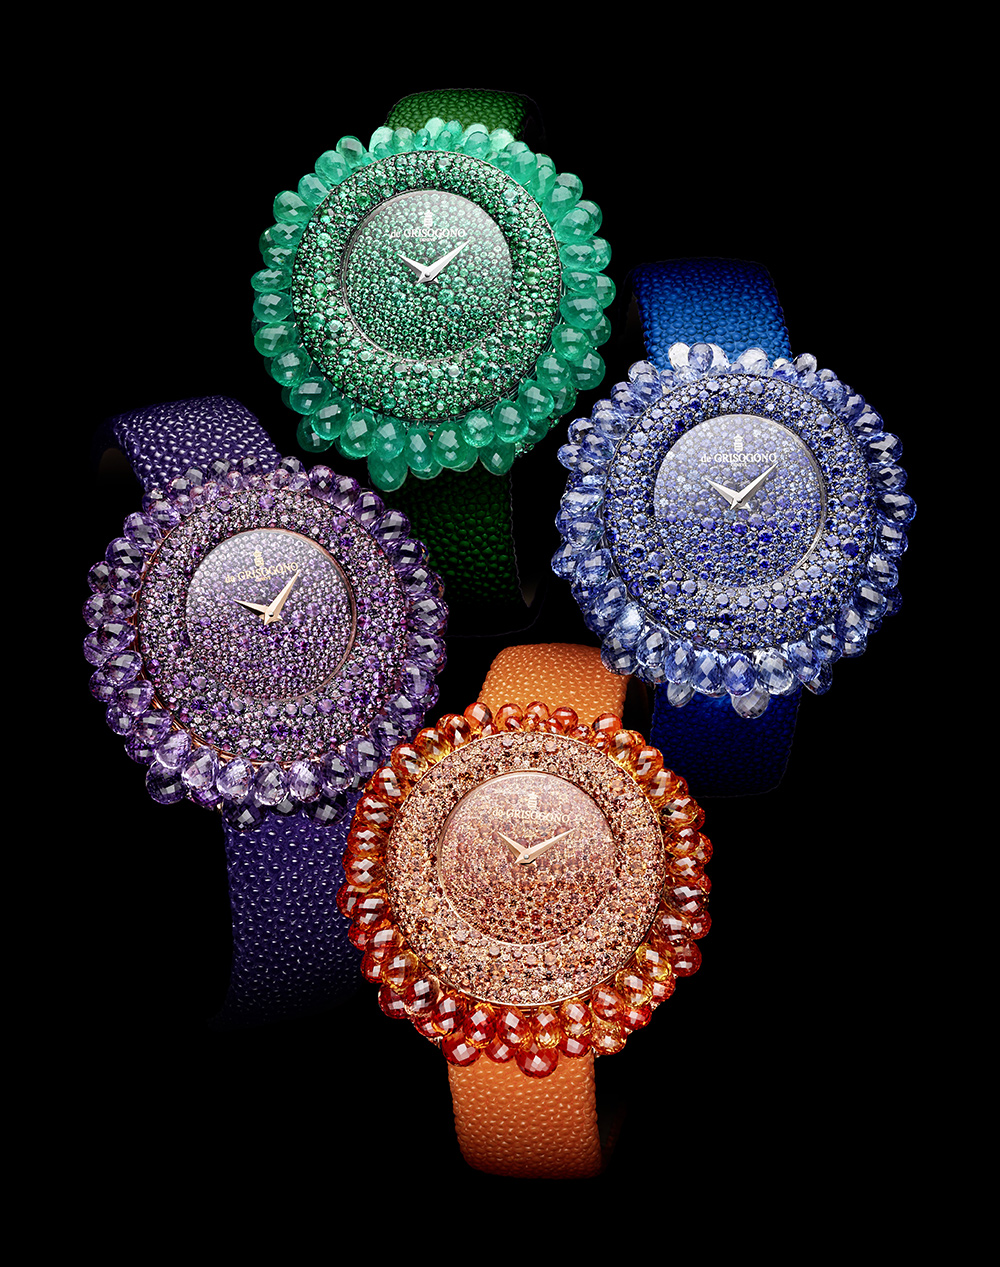 de Grisogono Grappoli watch with orange sapphires, amethysts, emeralds, blue sapphires